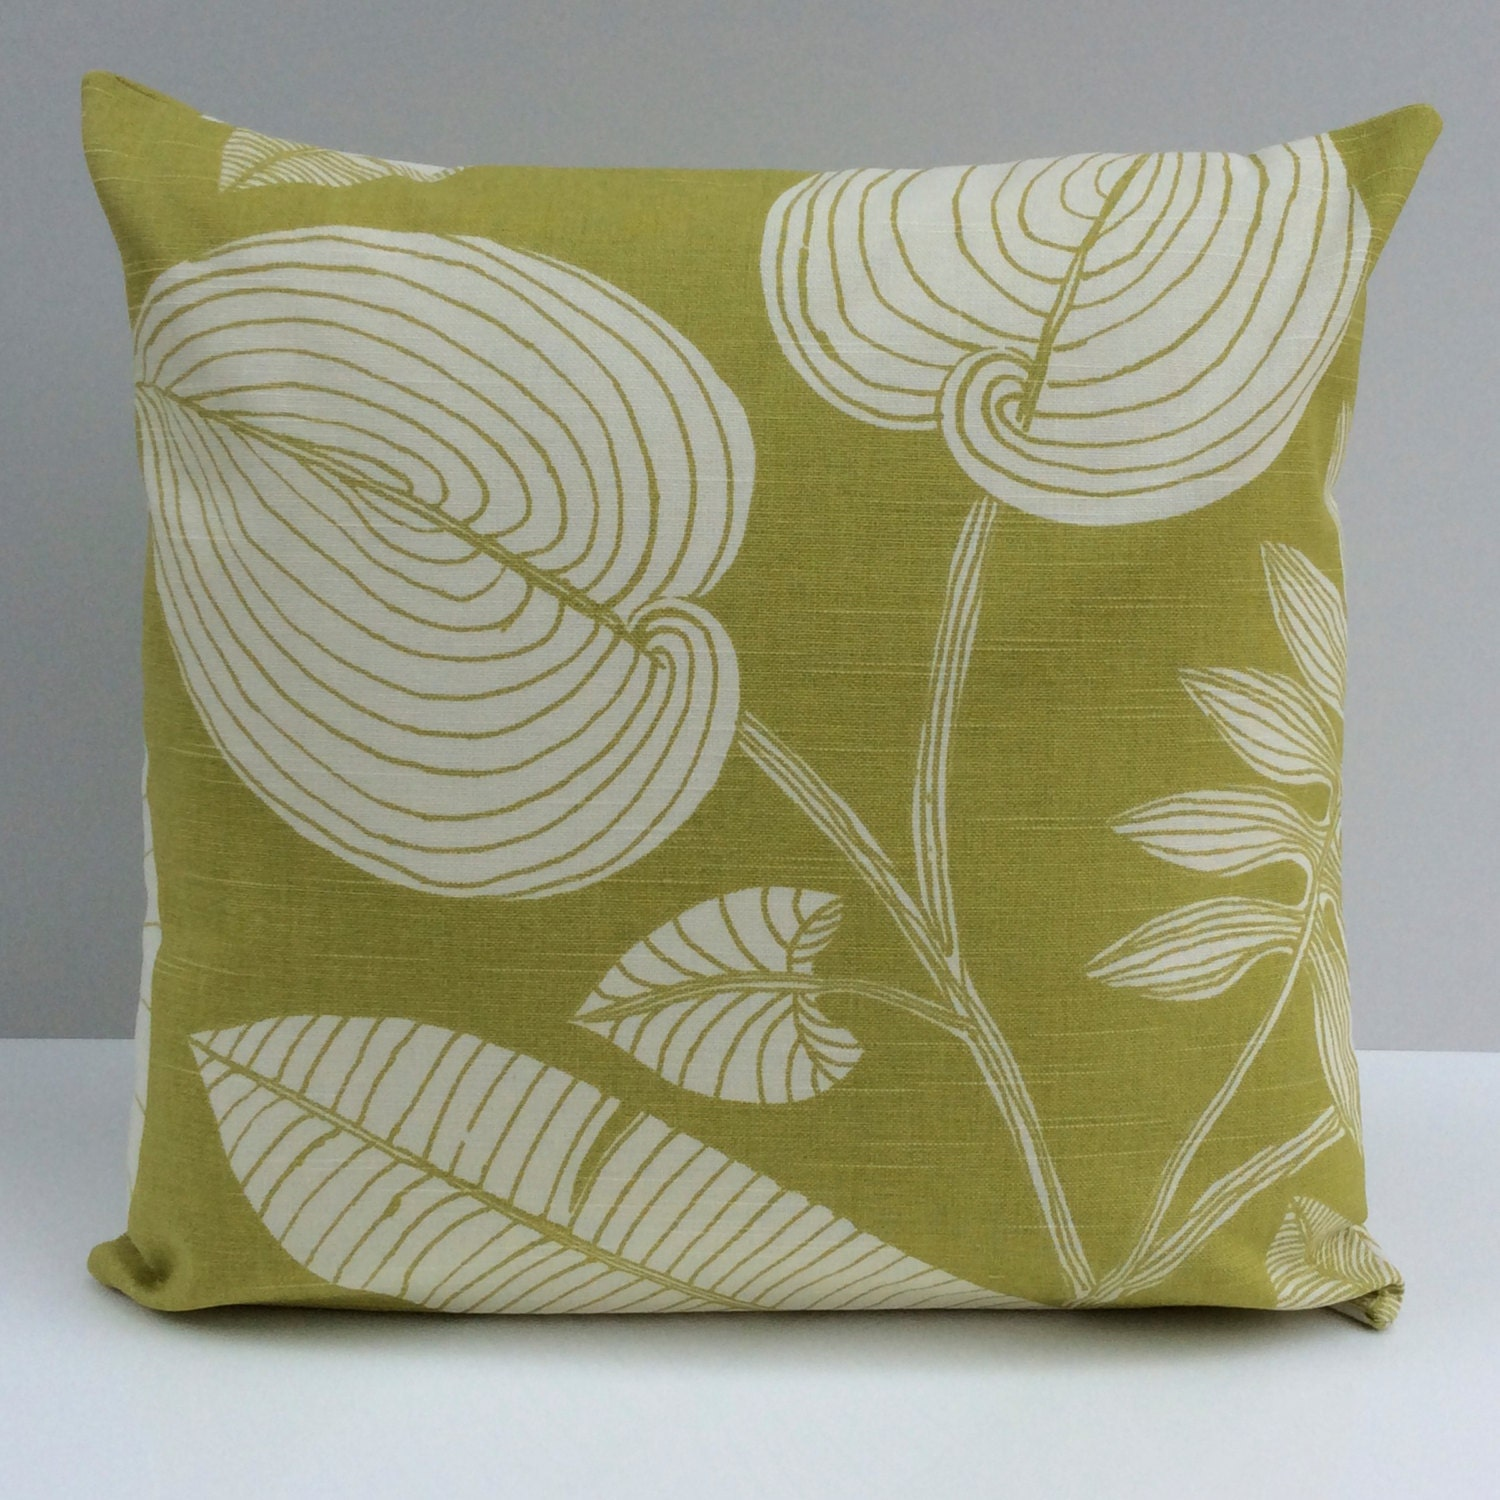 Throw Pillows Linen : Lime Green and Off White Pillow Throw Pillow Cover by SHPillows